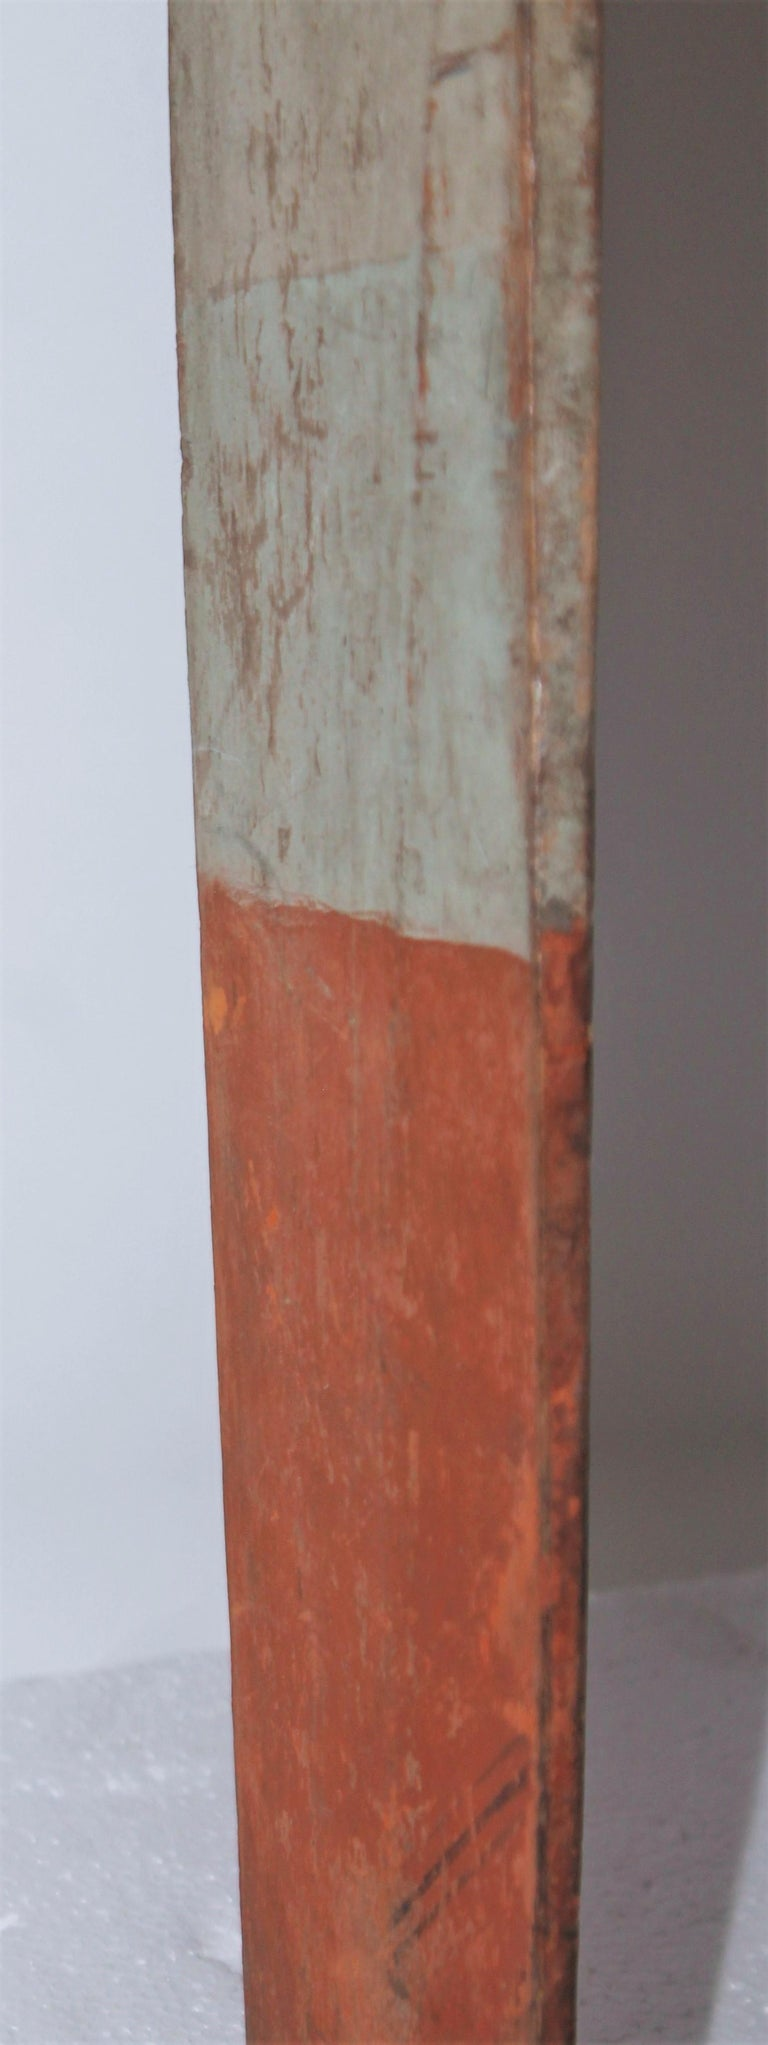 Hand-Painted 19thc Original Painted White & Orange Paddle For Sale